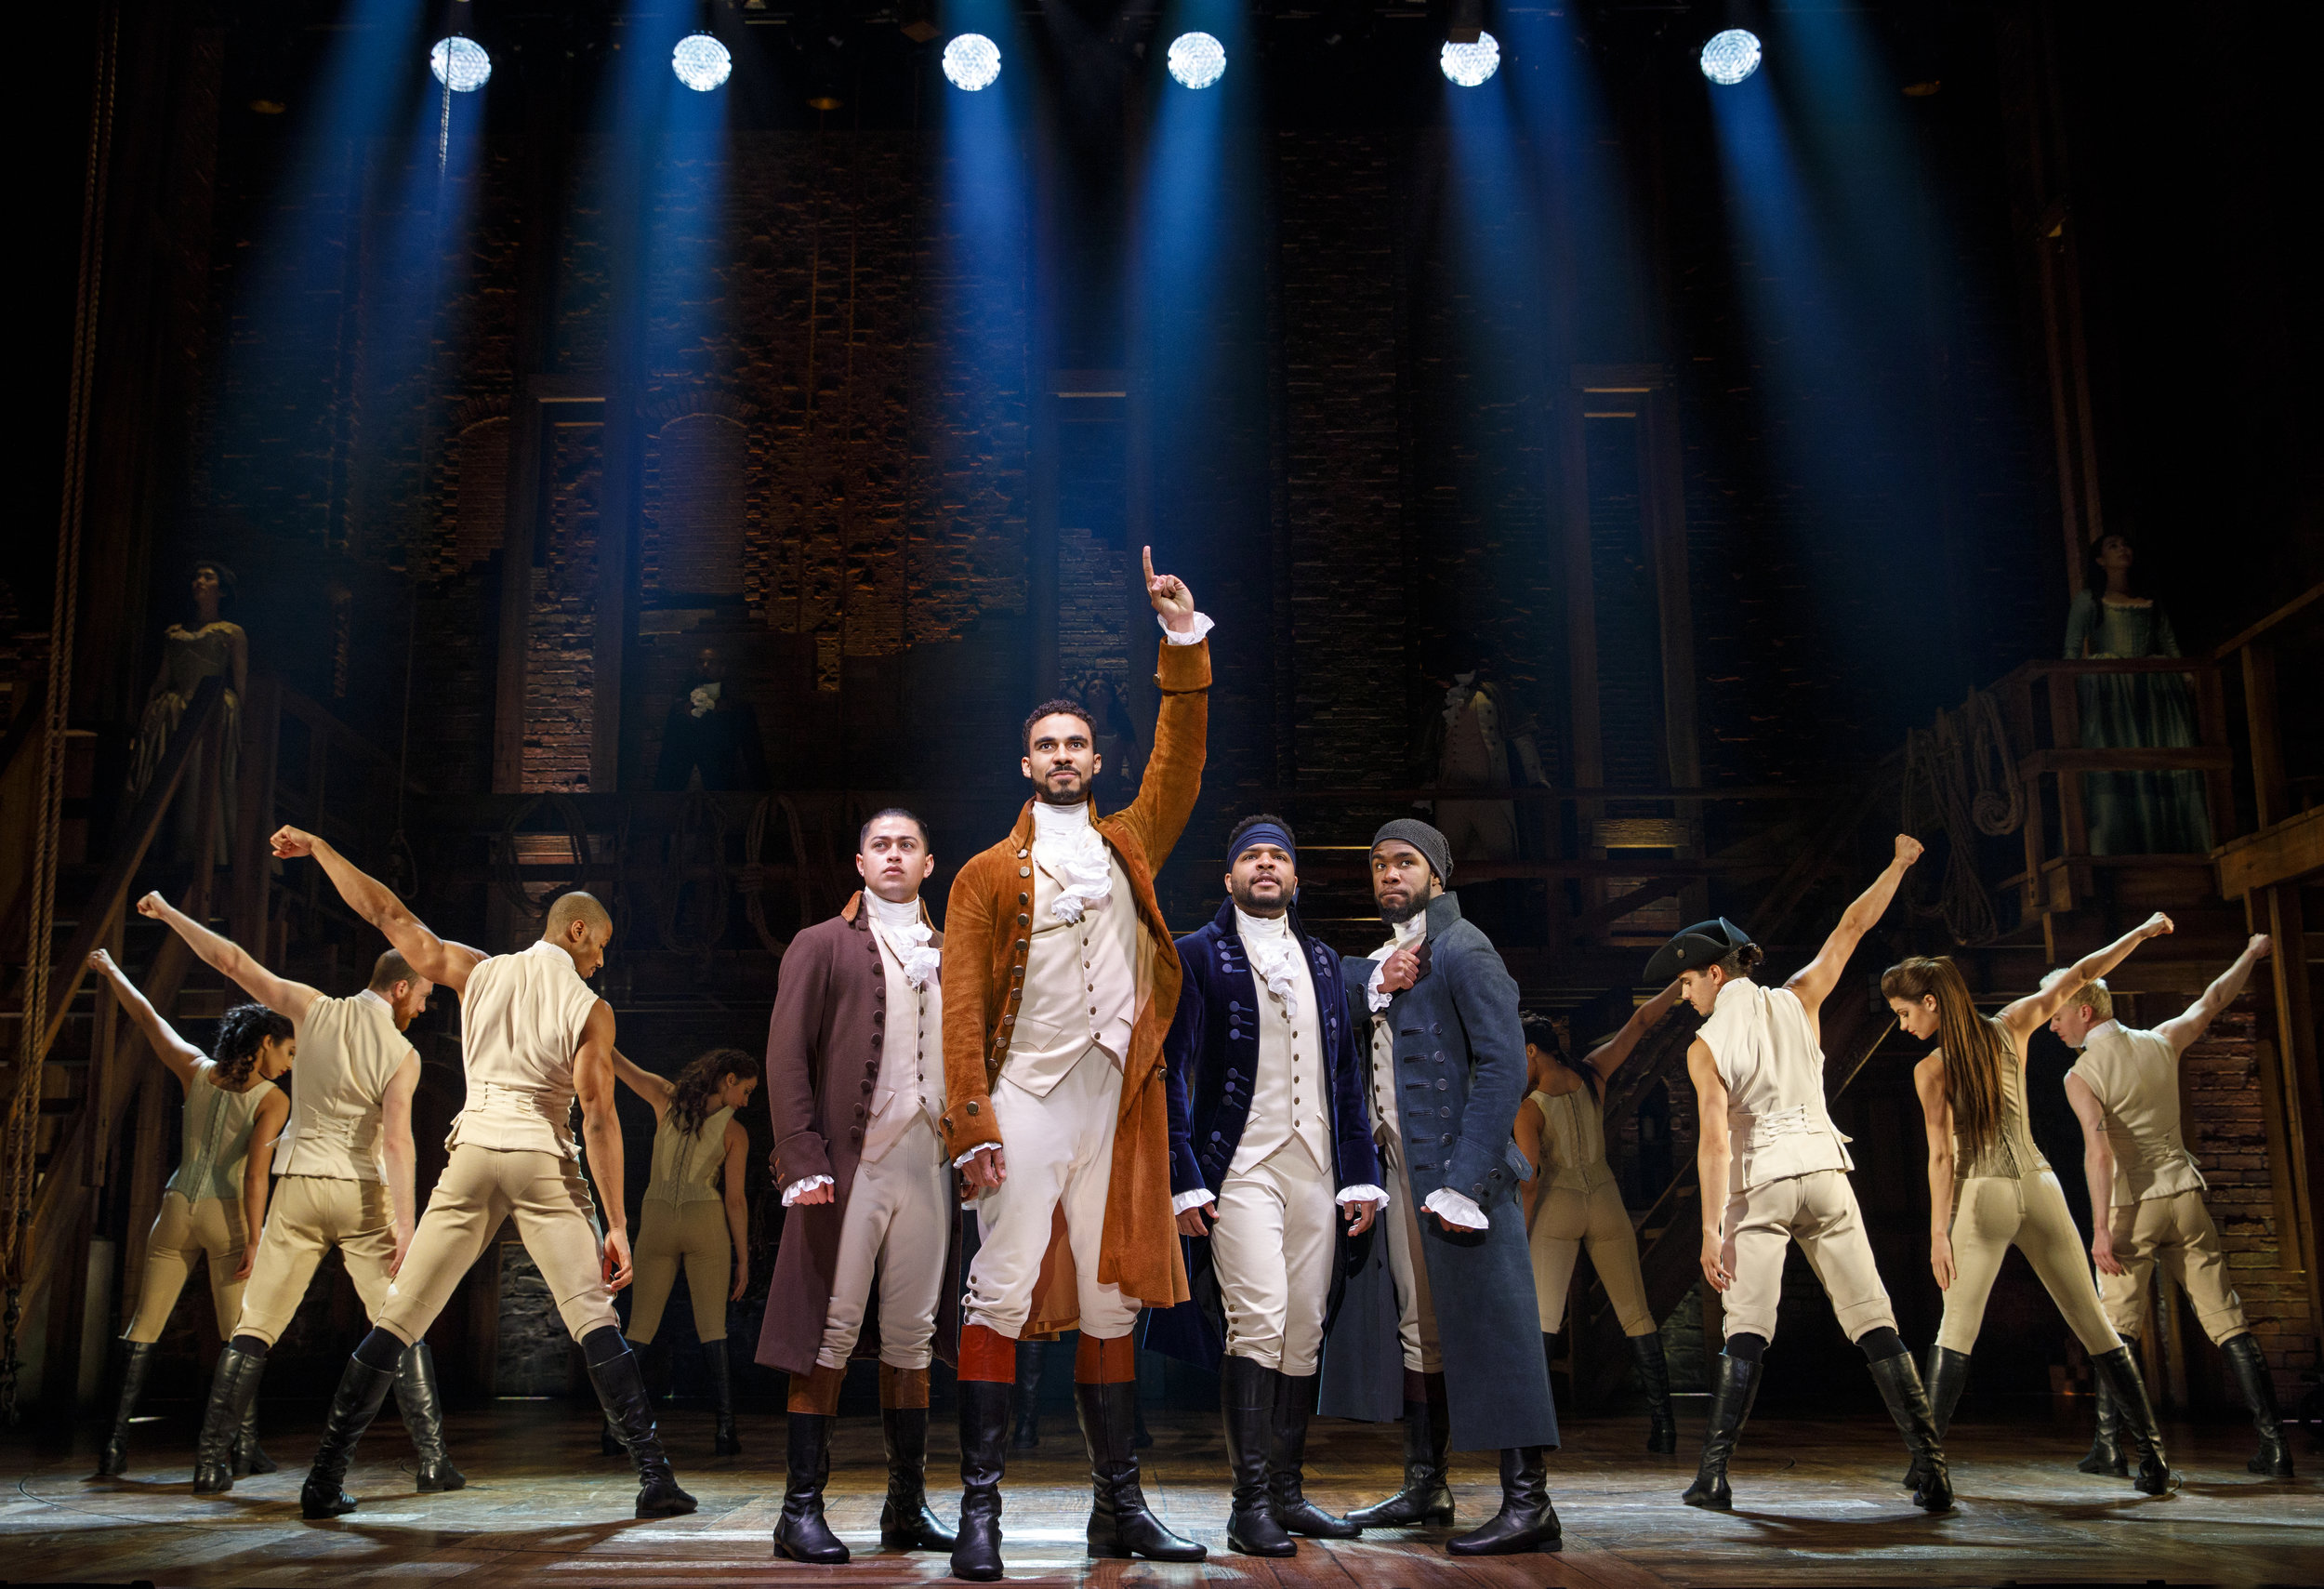 Laurens (Reuben J. Carbajal), Hamilton (Austin Scott), Lafayette (Bryson Bruce), Mulligan (Chaundre Hall-Bromfield) and Company - HAMILTON National Tour. Photo by Joan Marcus; courtesy of the Kennedy Center.